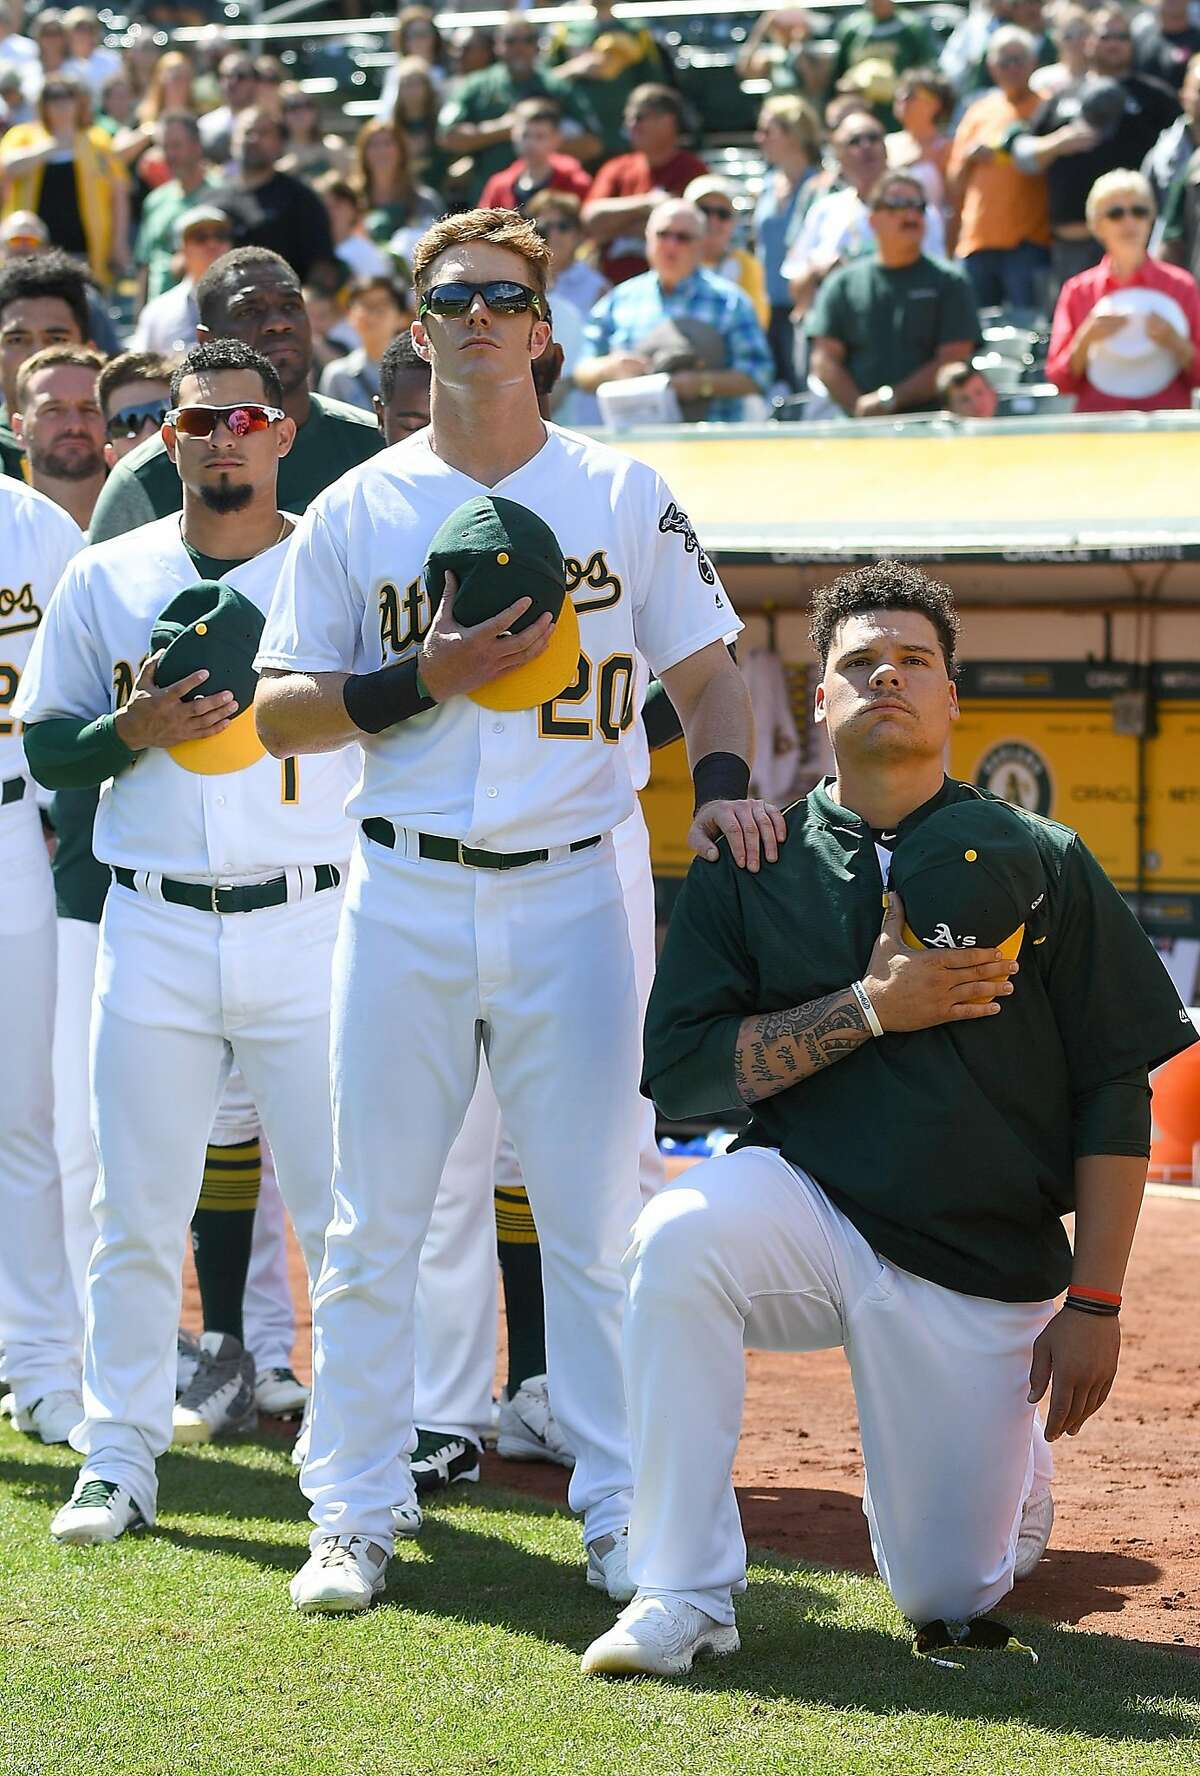 Bruce Maxwell of the Oakland Athletics kneels in protest next to teammate Mark Canha #20 duing the singing of the National Anthem prior to the start of the game against the Texas Rangers at Oakland Alameda Coliseum on September 24, 2017 in Oakland, California.